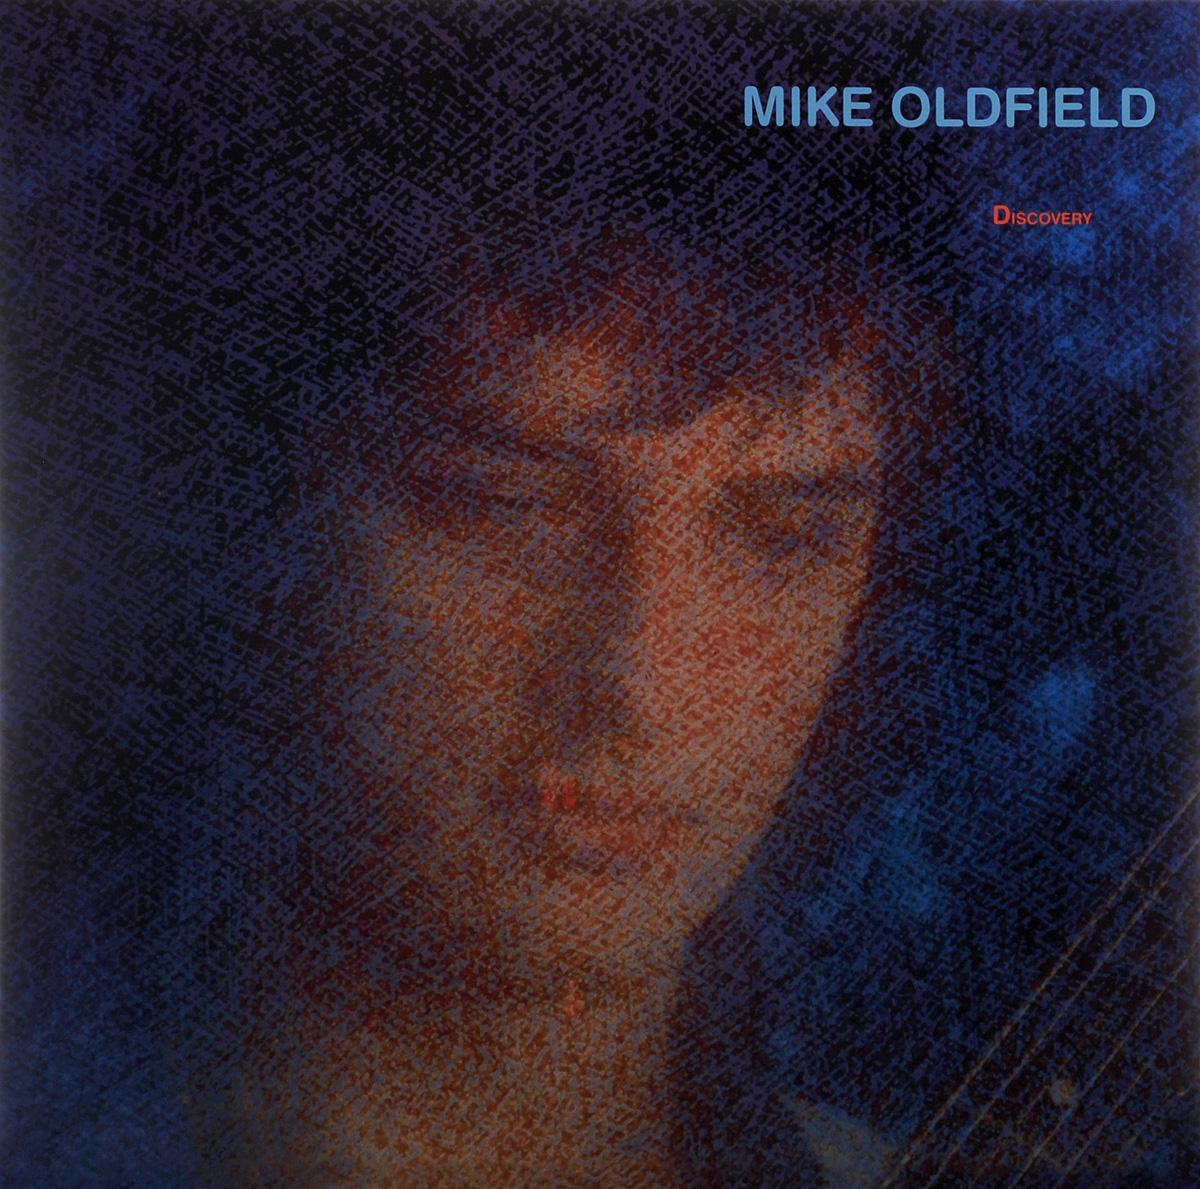 Майк Олдфилд Mike Oldfield. Discovery (LP) майк олдфилд mike oldfield five miles out deluxe edition 2 cd dvd